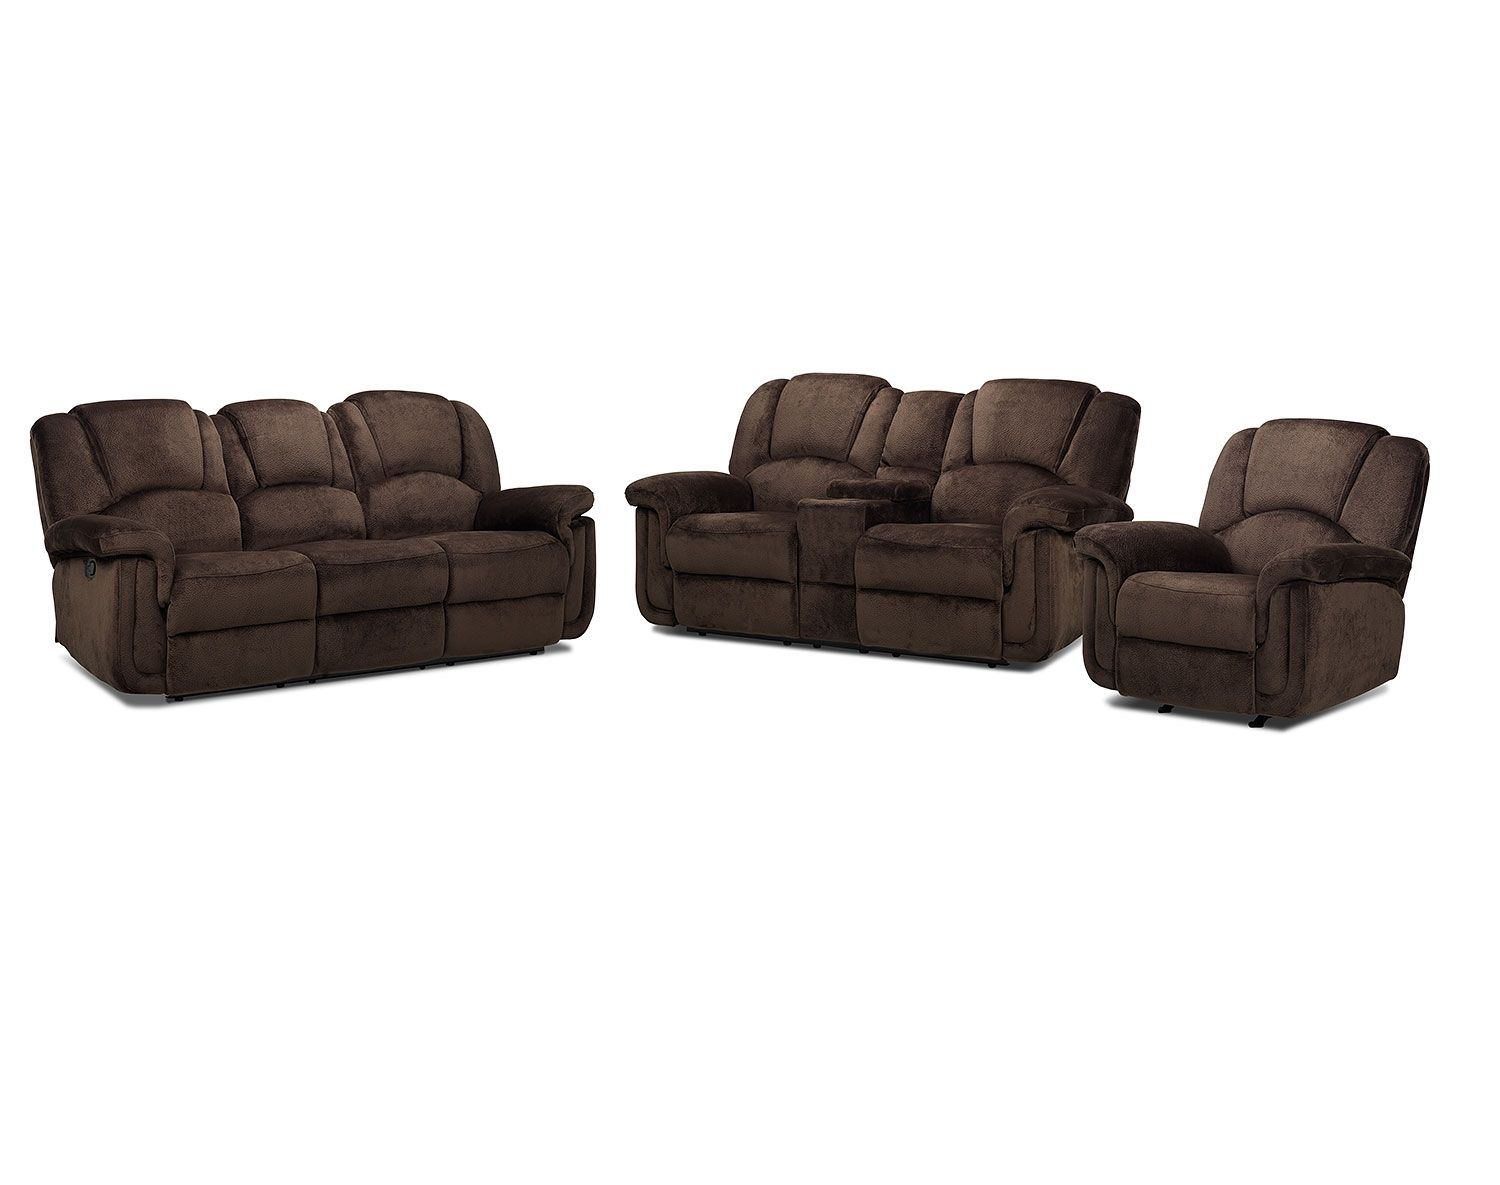 Living Room Furniture The Pitch Collection Reclining Sofa Leons